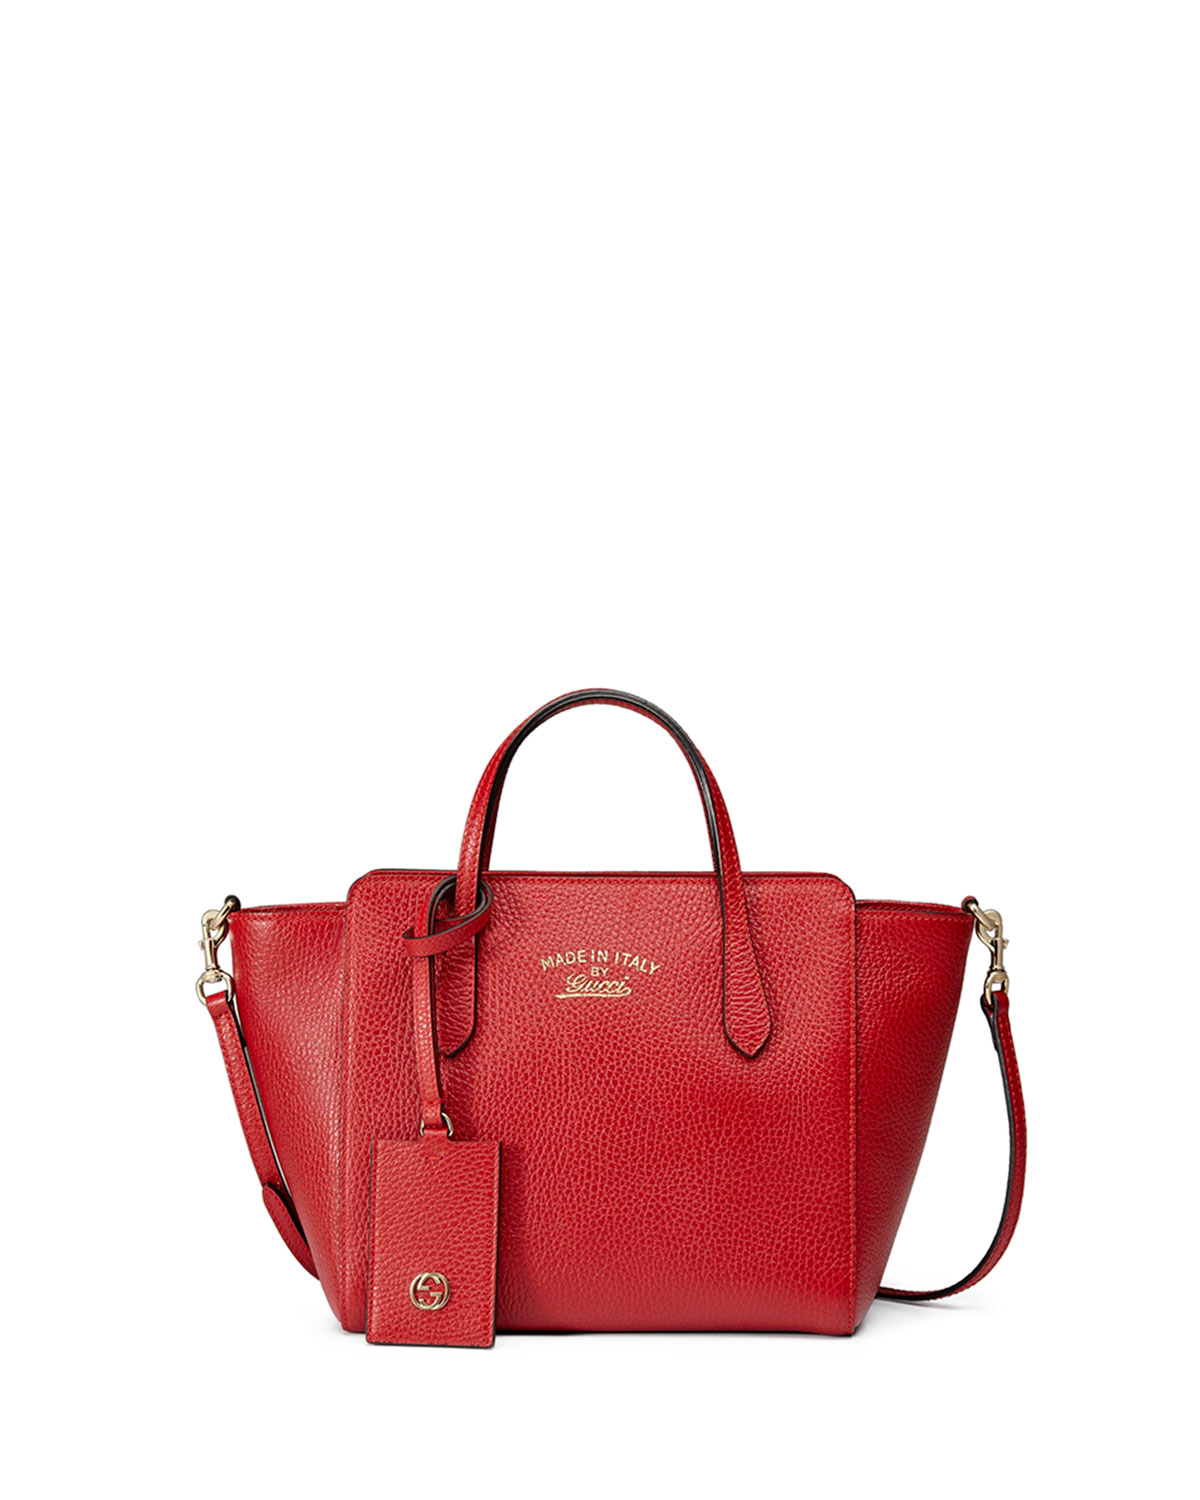 81e7bca42957 Gucci Swing Mini Crossbody Tote Bag, Red | Neiman Marcus